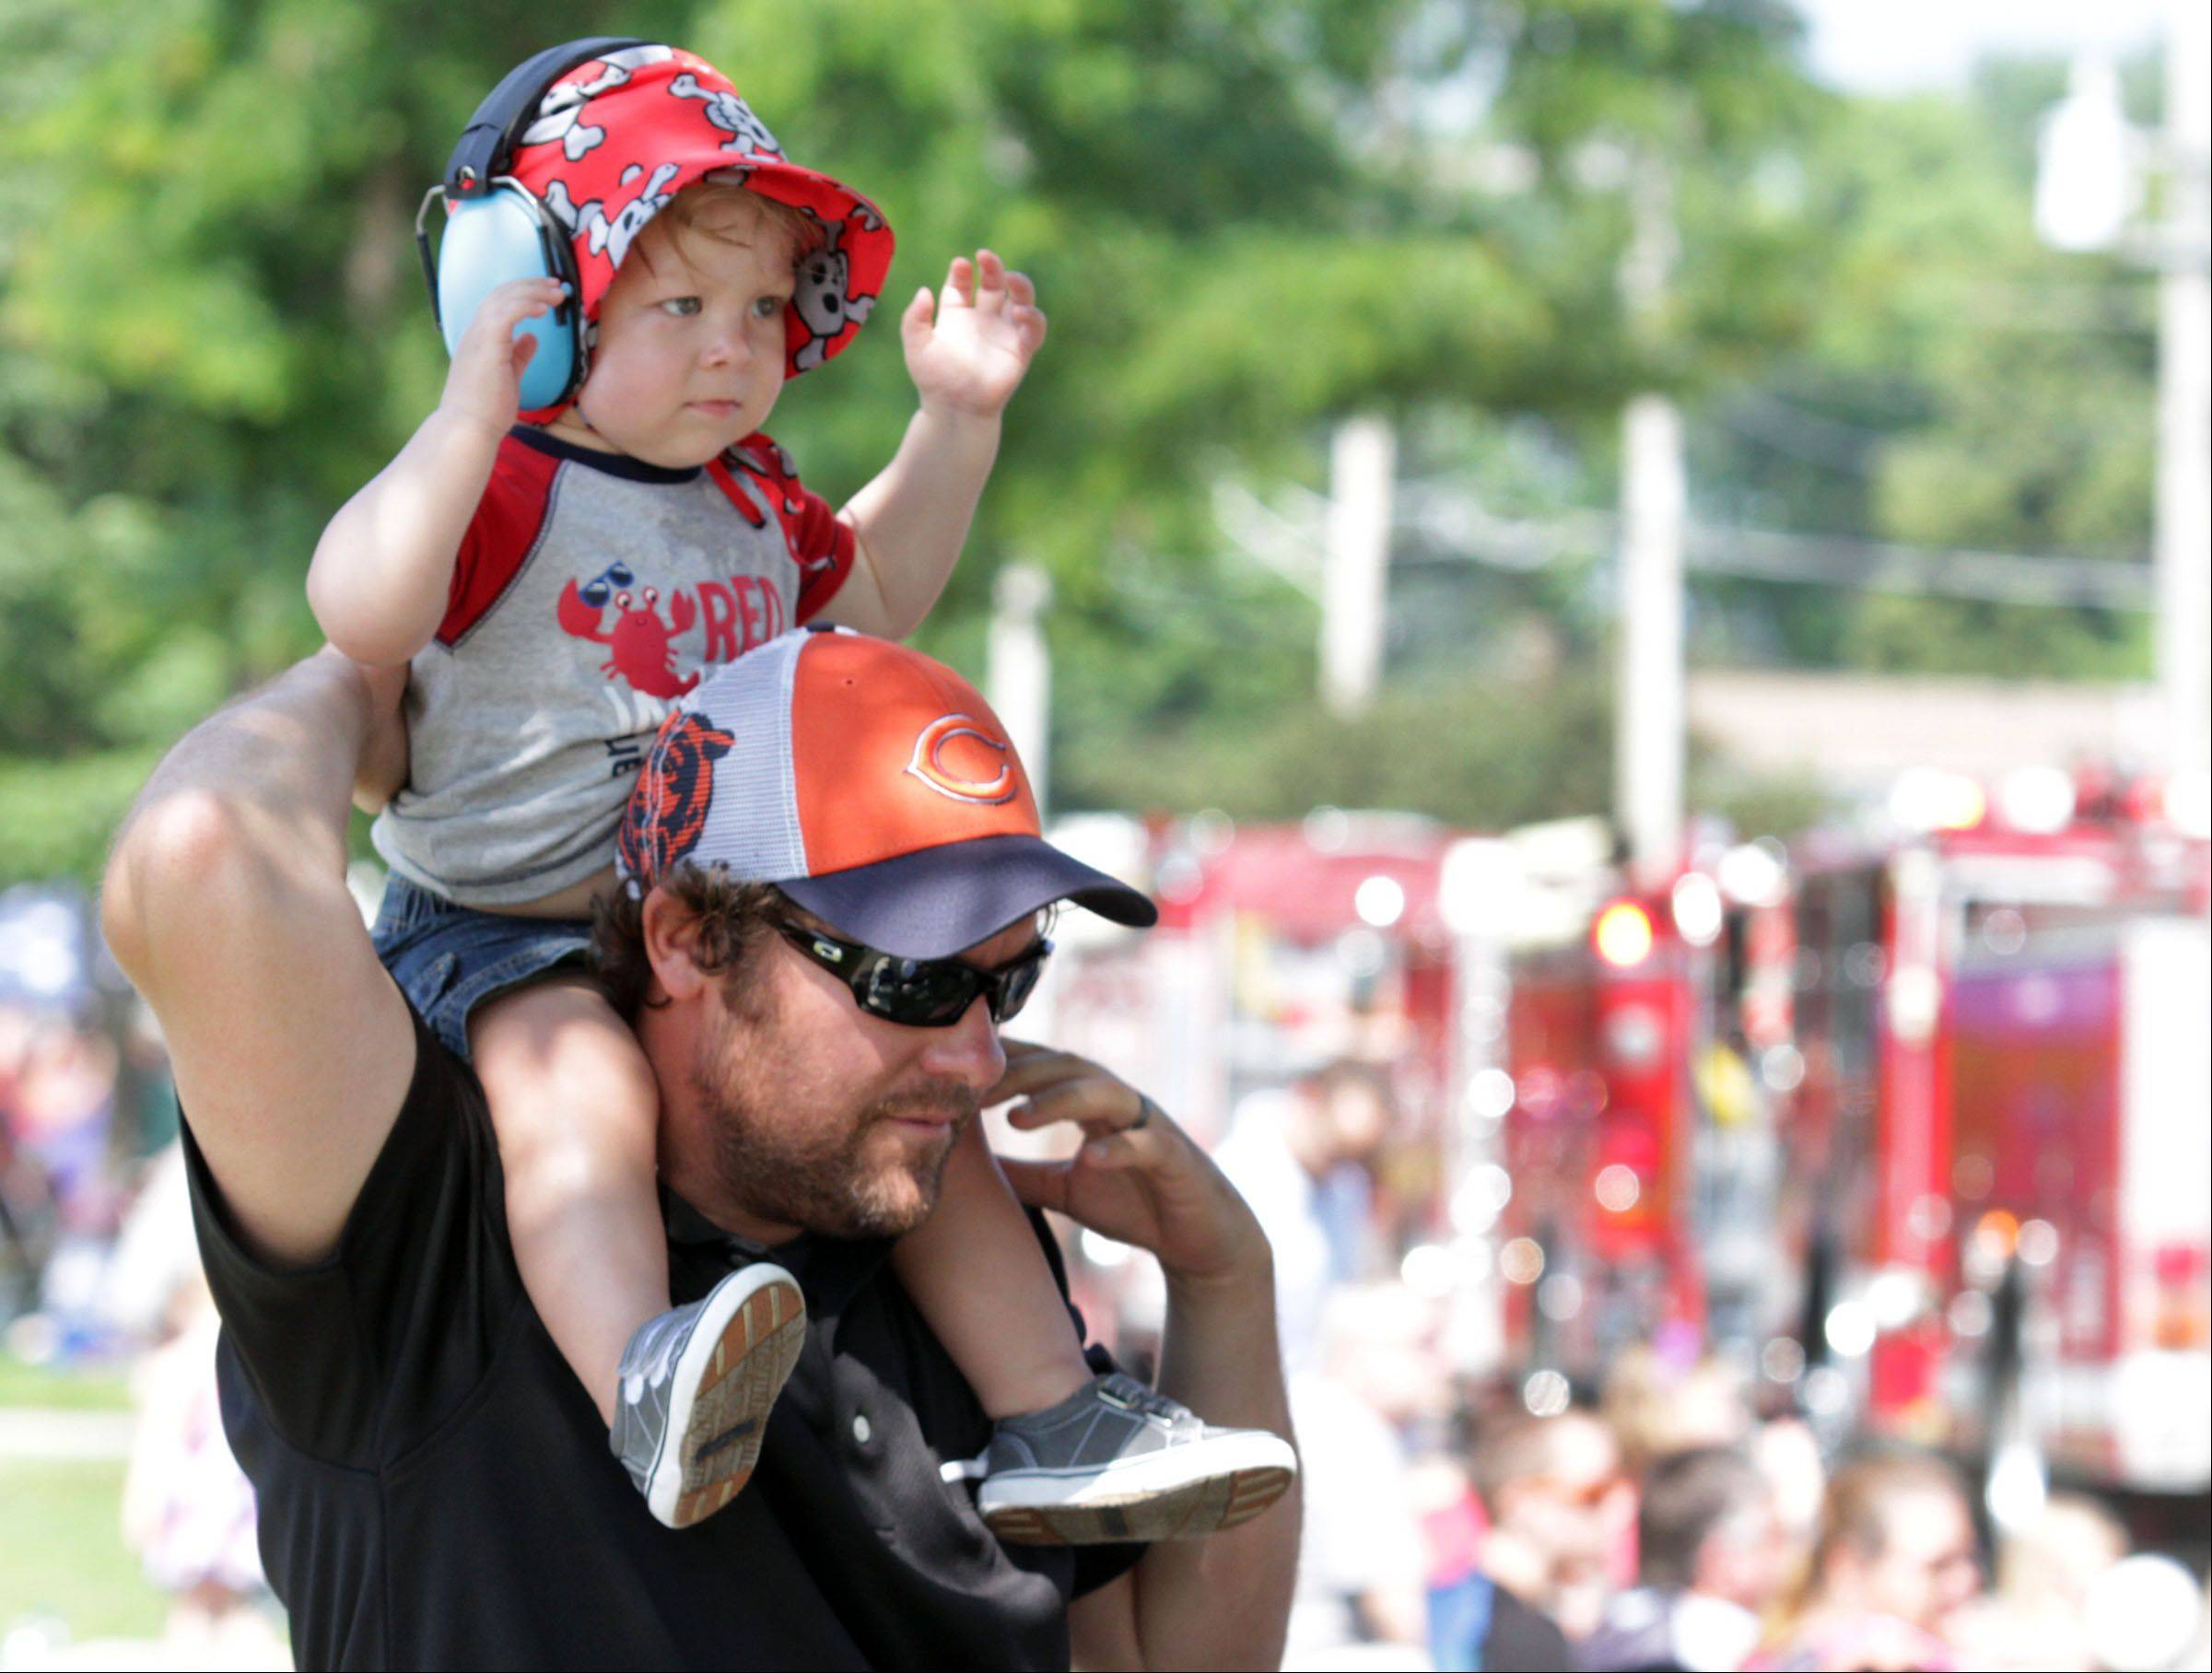 Wearing ear protection, one-year-old Brayden McNelis, on his dad Jeremy's shoulders, doesn't mind the firetruck sirens in the Celebrate Fox Lake parade on Grand Avenue Saturday.